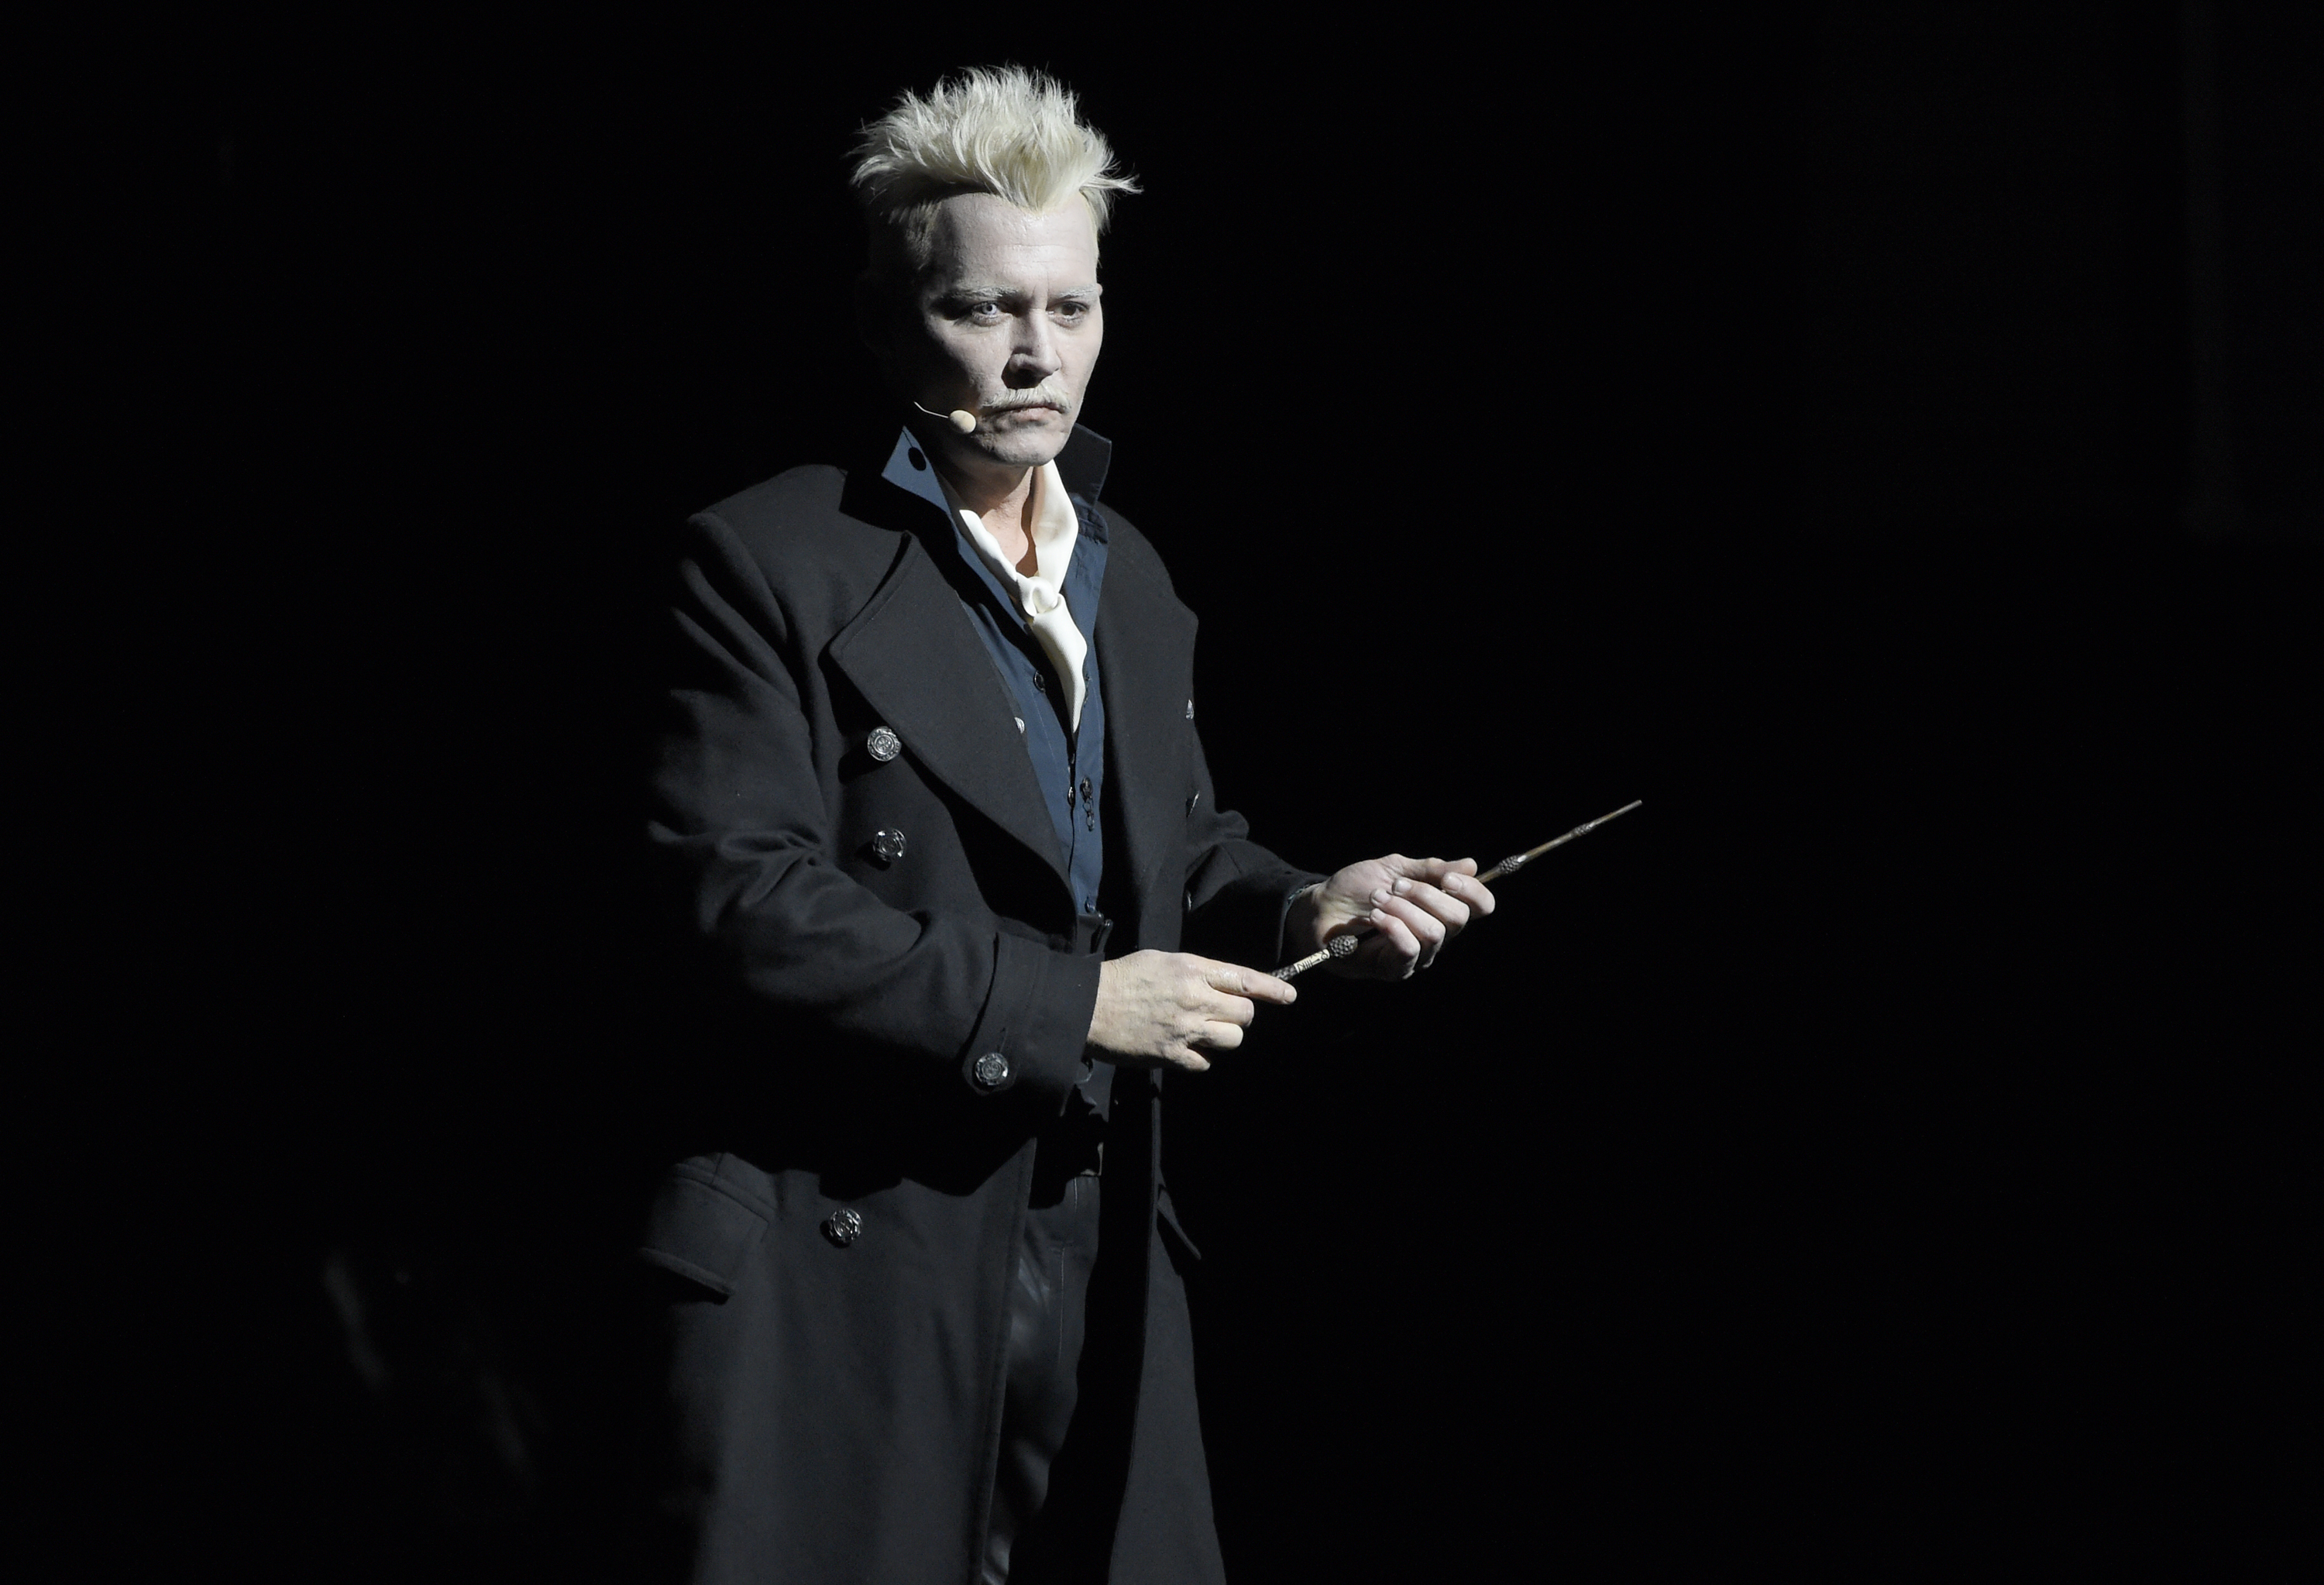 Blond Johnny Depp stuns Comic-Con audience in full Fantastic Beasts costume